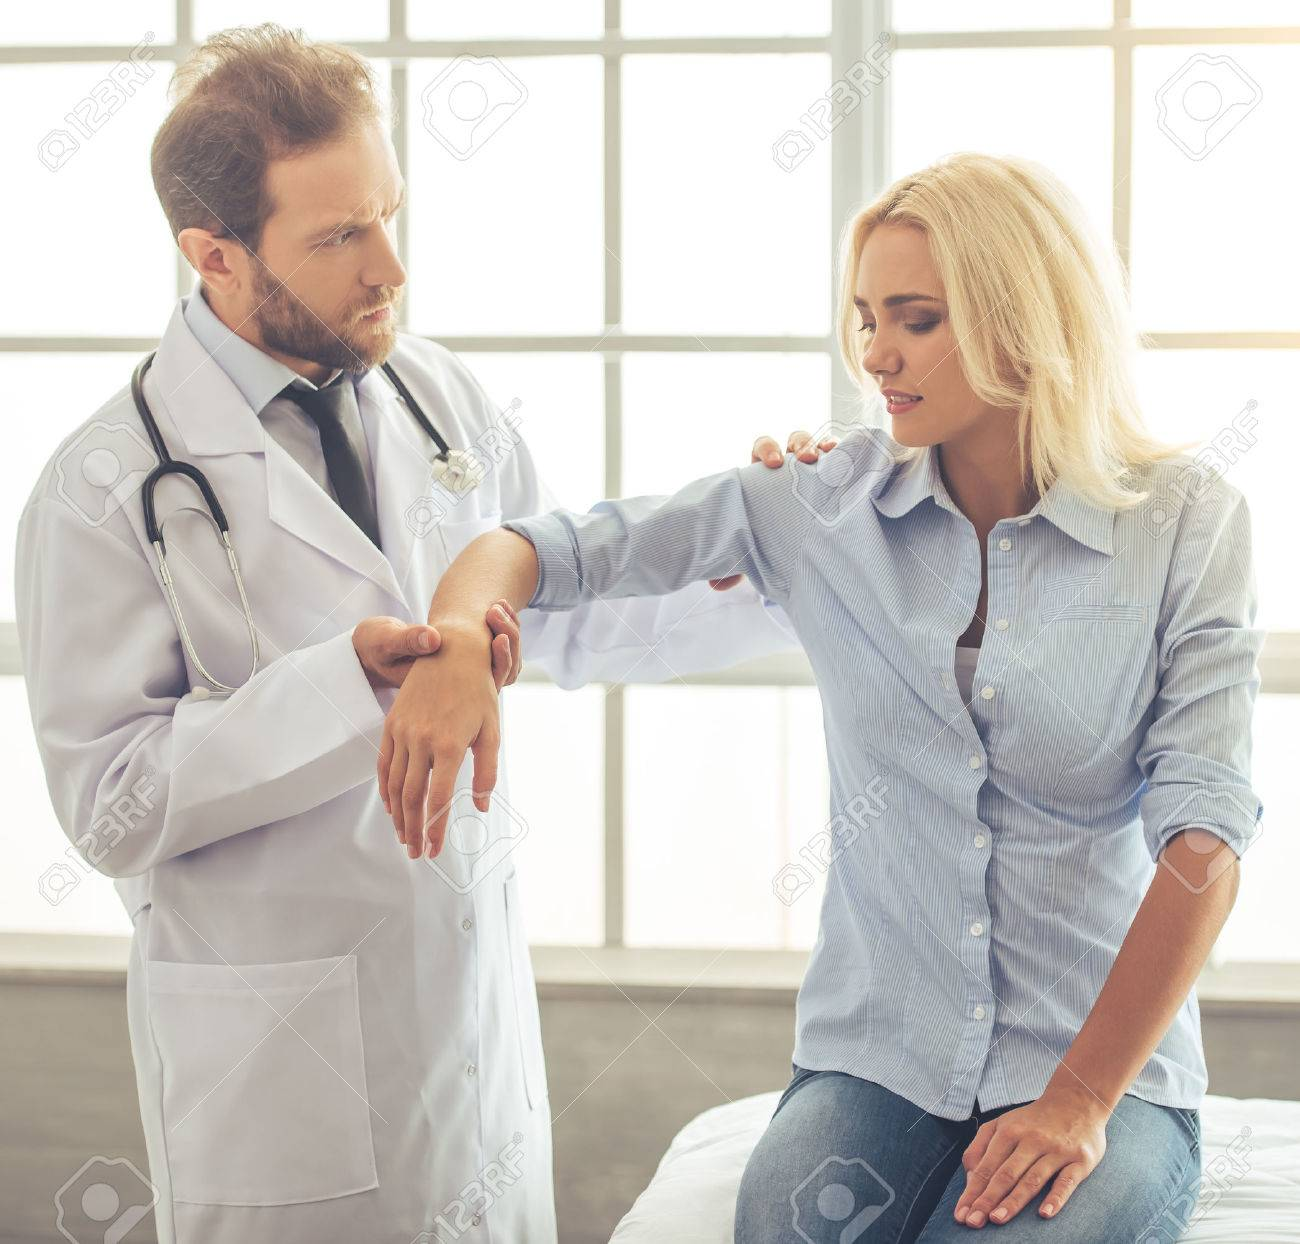 Handsome doctor is examining female patient's injured hand while working in his office - 64005749